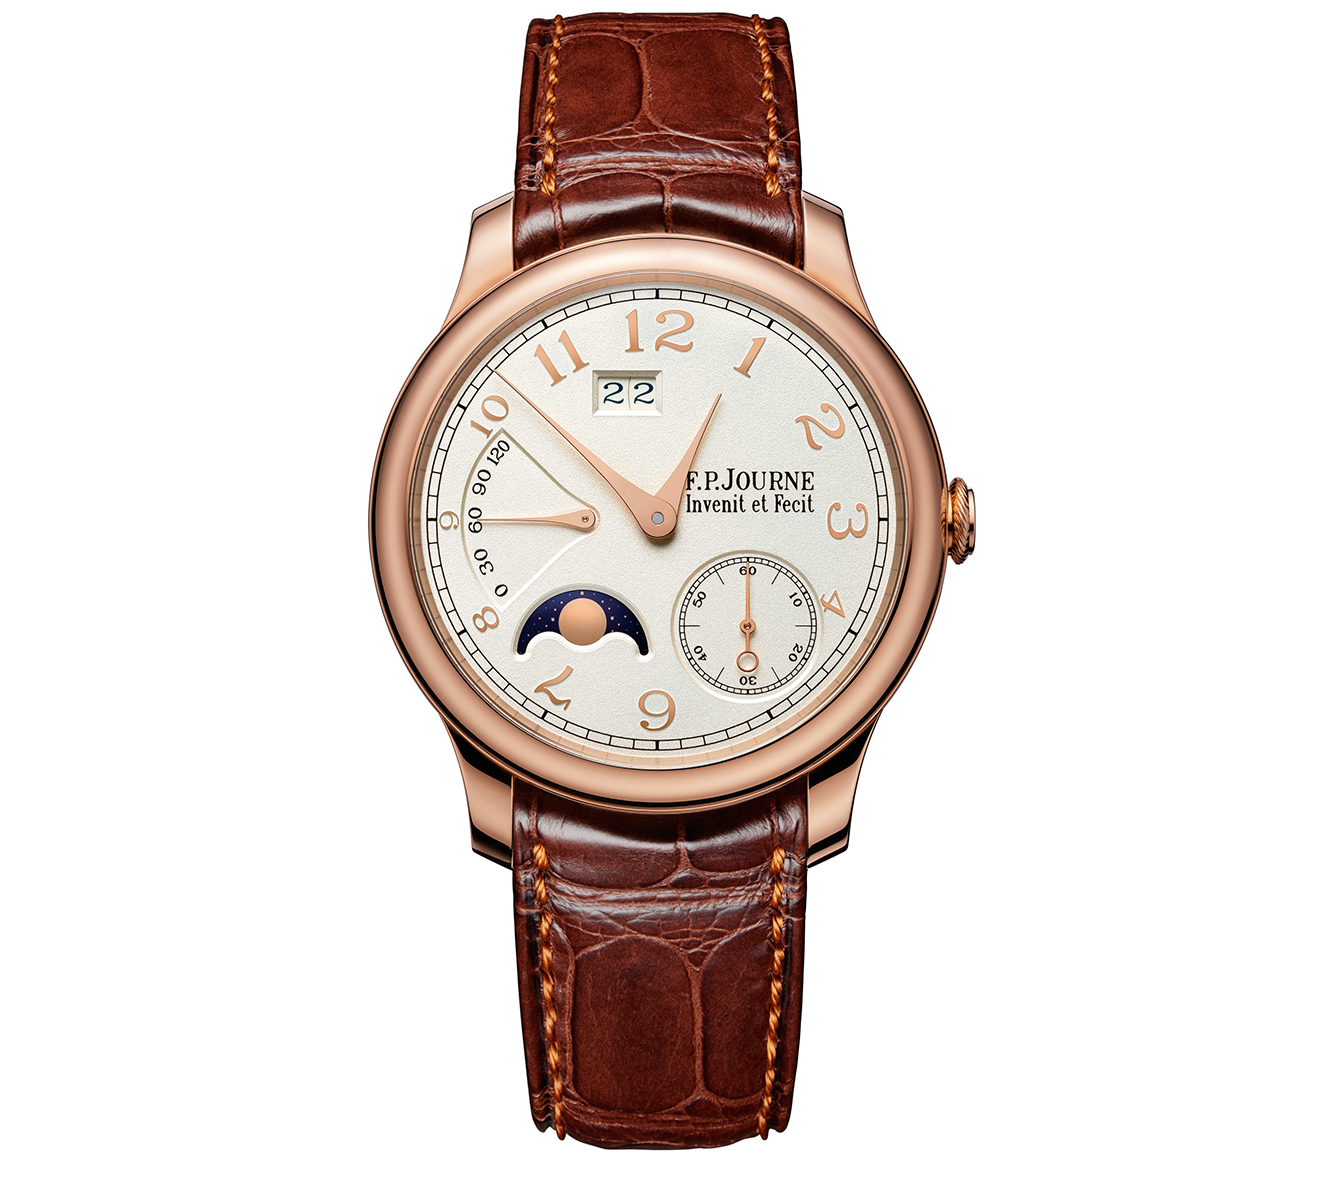 Часы Automatique Lune Rose Gold F.P.Journe Octa OCTA AUTOMATIQUE LUNE/RG/SILVER GOLD NUMERALS - фото 1 – Mercury